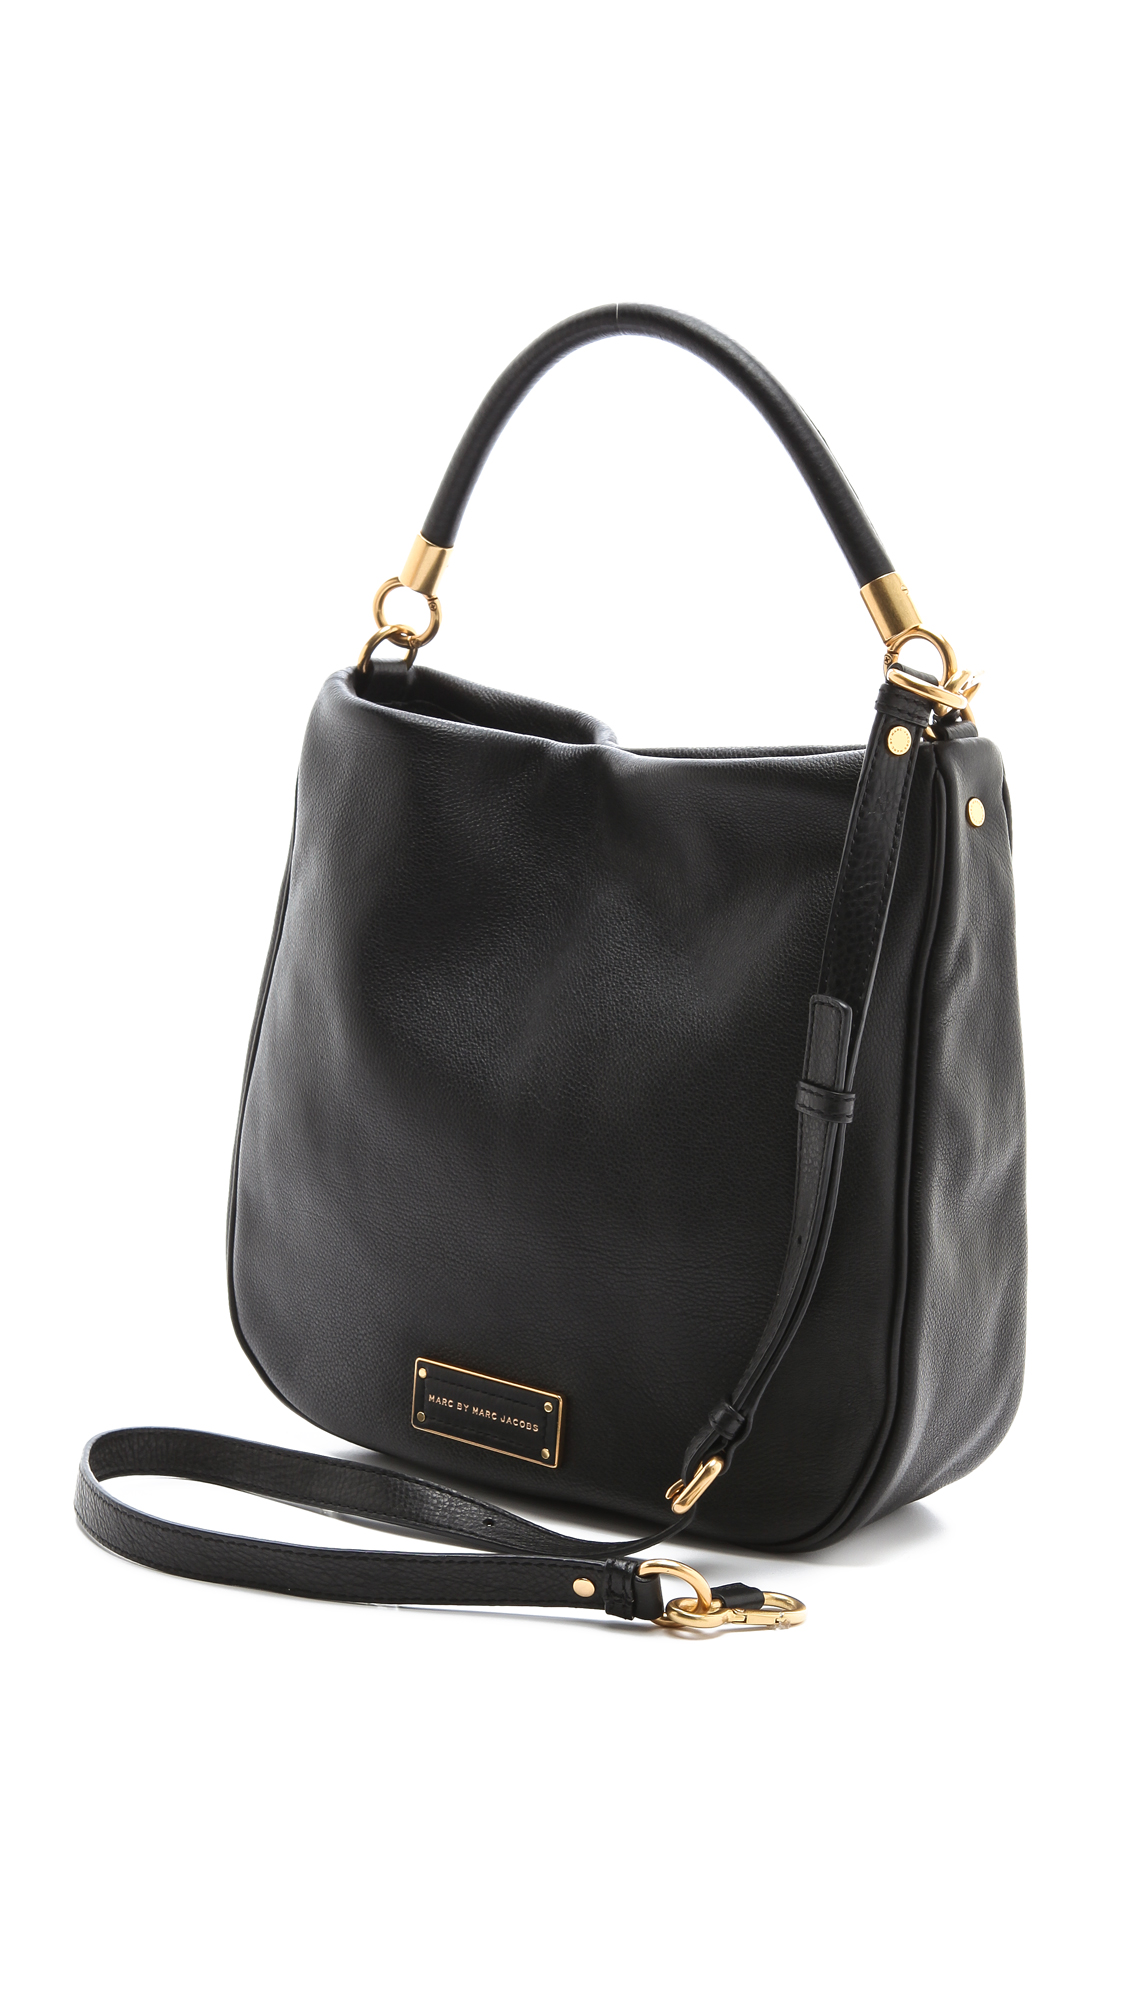 05d42f04061d Marc by Marc Jacobs Too Hot to Handle Hobo